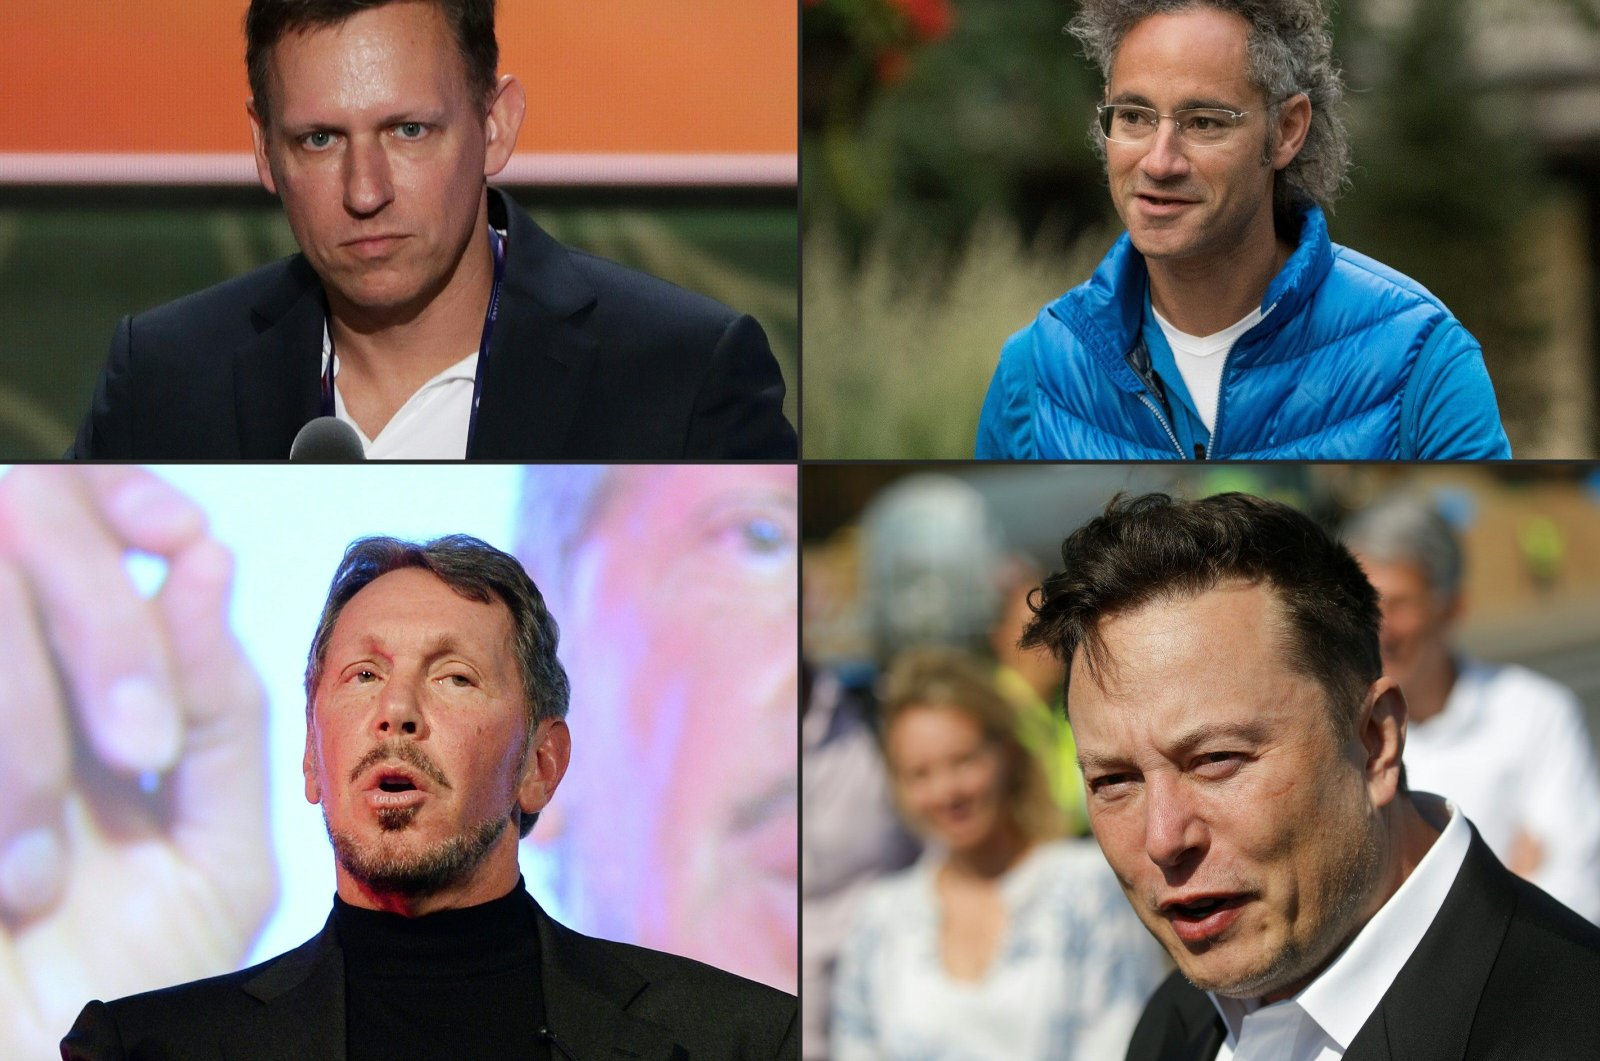 This combination of file pictures created on Dec. 17, 2020, shows, Peter Thiel (top L), co-founder of PayPal, on July 19, 2016, in Cleveland, Ohio; Alex Karp (top R), chief executive officer of Palantir Technologies, on July 14, 2017, in Sun Valley, Idaho; Larry Ellison (bottom L), CEO of Oracle Corporation,  on April 9, 2014, in Tokyo; and Tesla CEO Elon Musk on September 03, 2020, in Gruenheide near Berlin. (AFP Photo)